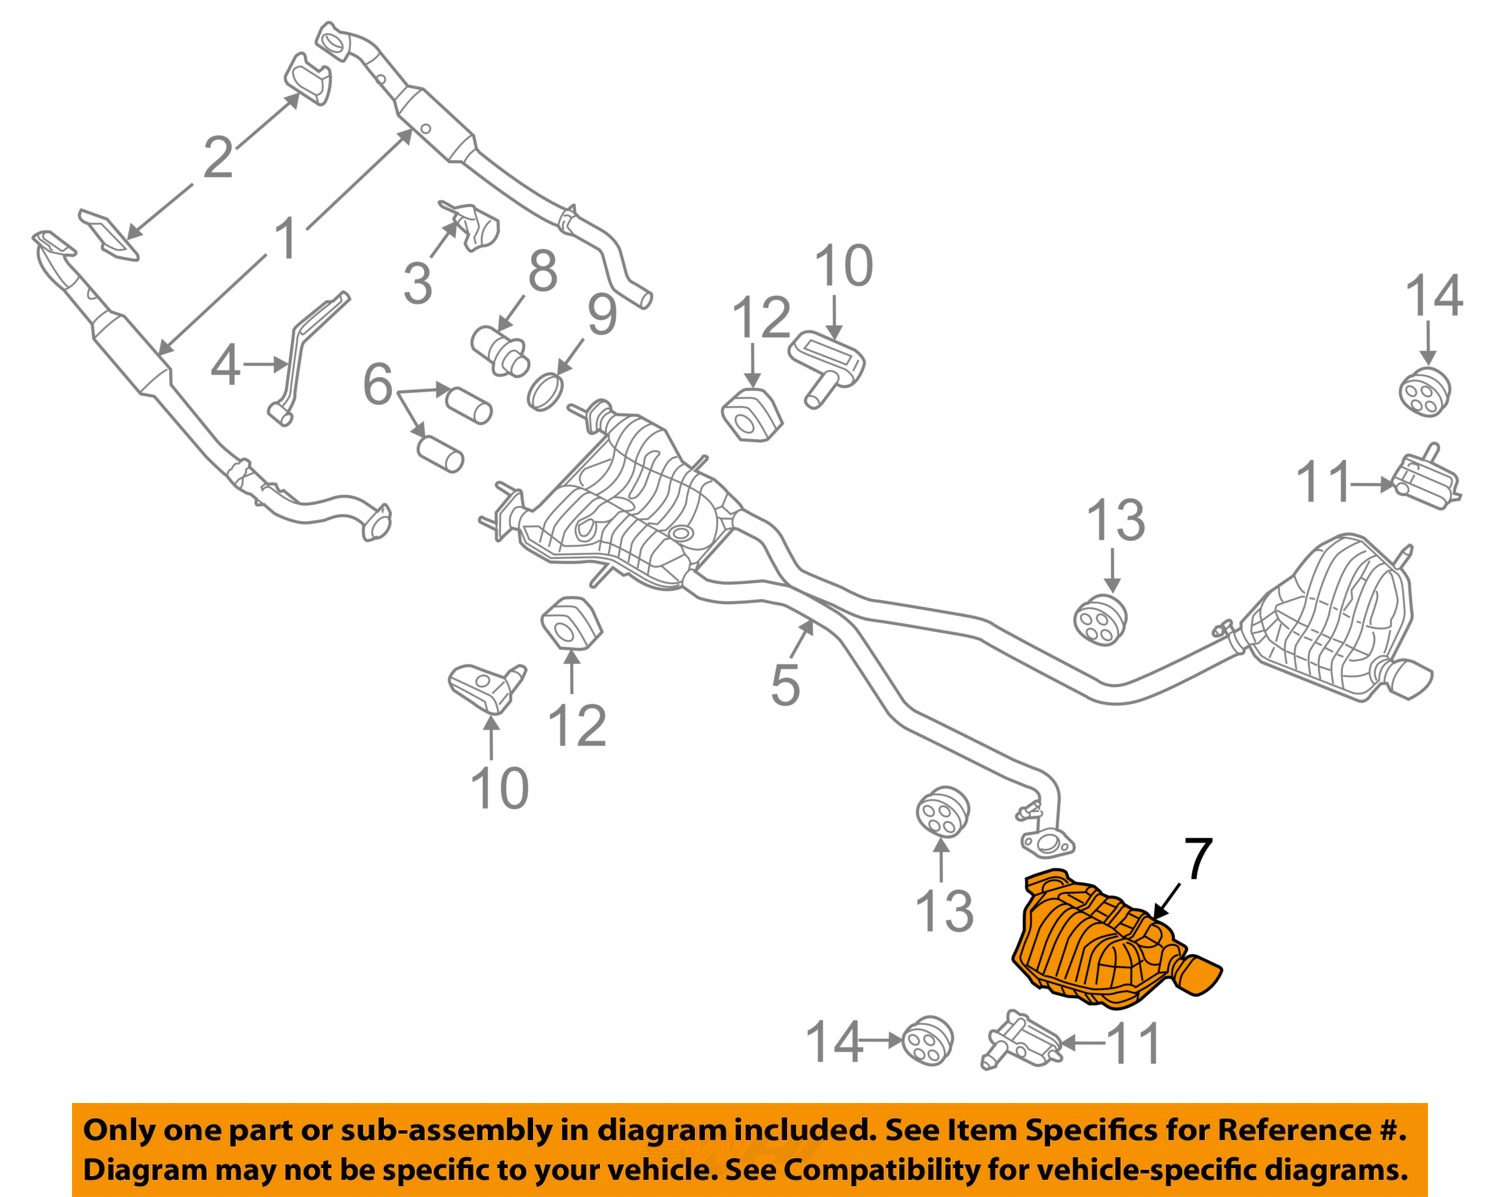 2004 Jeep Wrangler Parts Diagram Schematic Diagrams Front Axle Upgrades Sunray Engineering 1550 9 Inch Photo 8987432 Exhaust Wiring Services U2022 Transmission